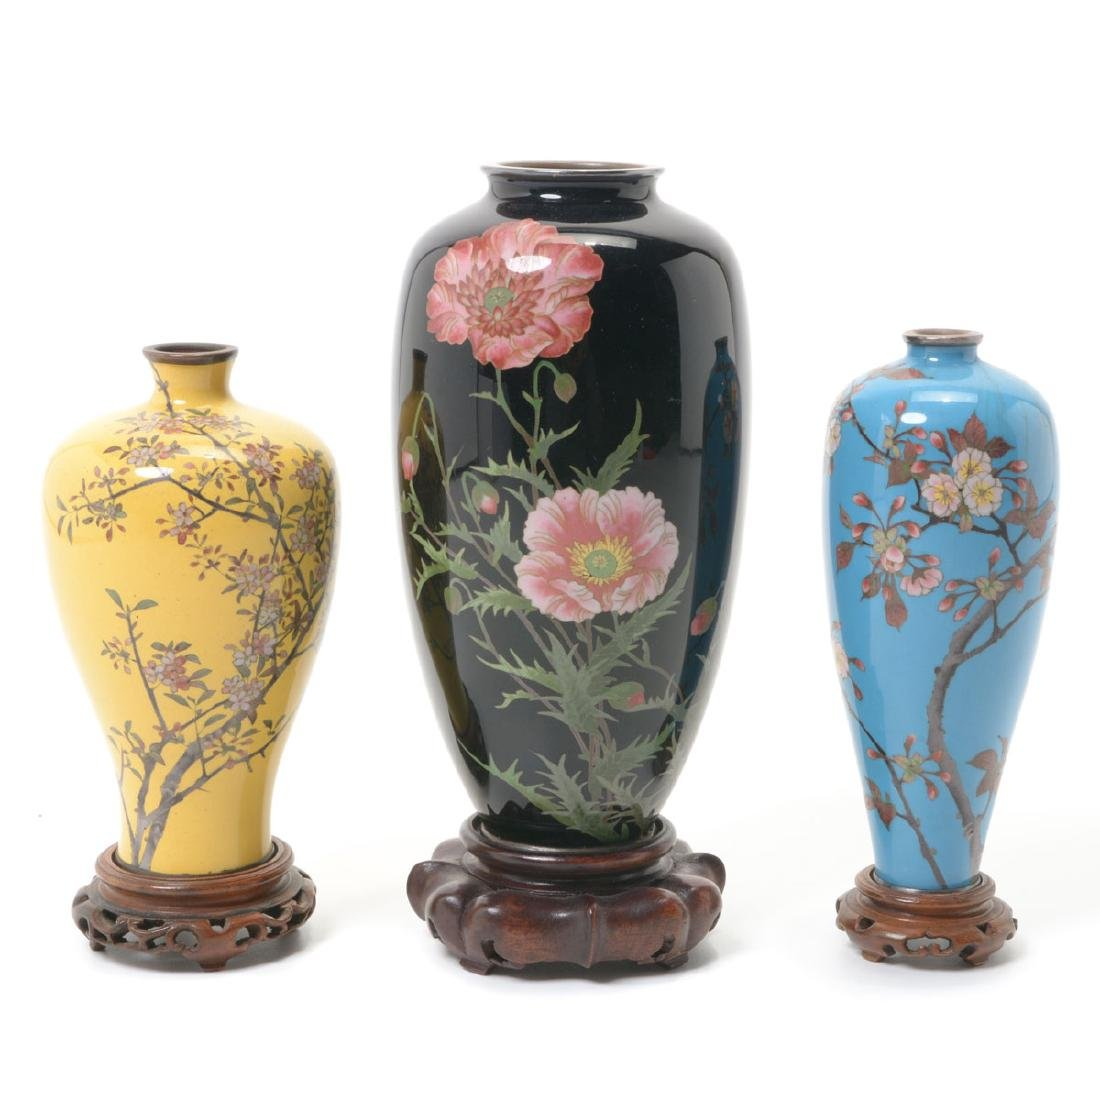 Three Japanese Cloisonne Enamel Vases, Late 19th C.